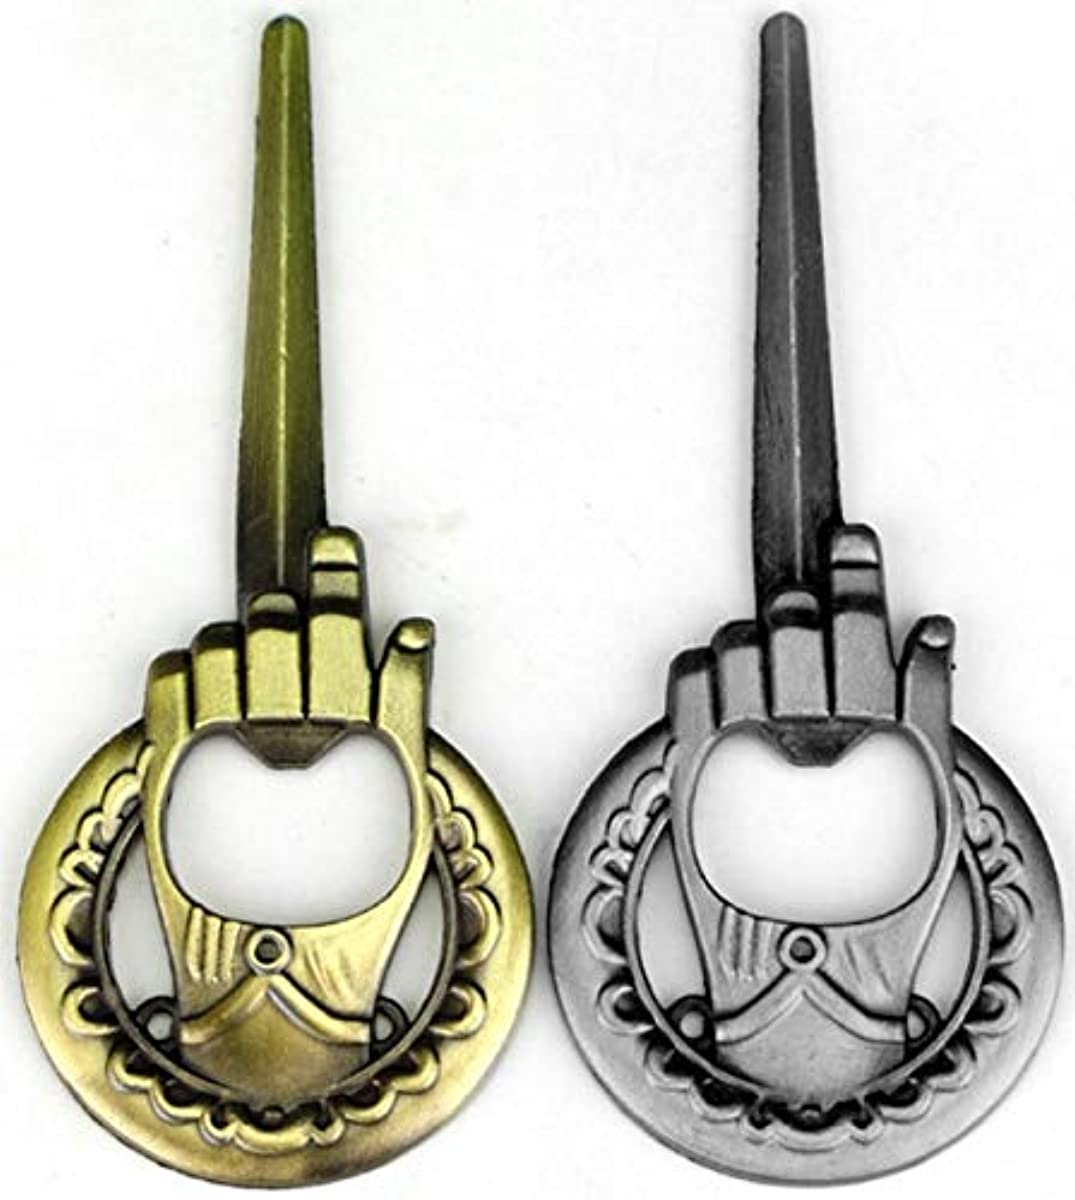 Hand Of The King Bottle Opener 2-Pack - Game Of Thrones Style - Bronze and Silve